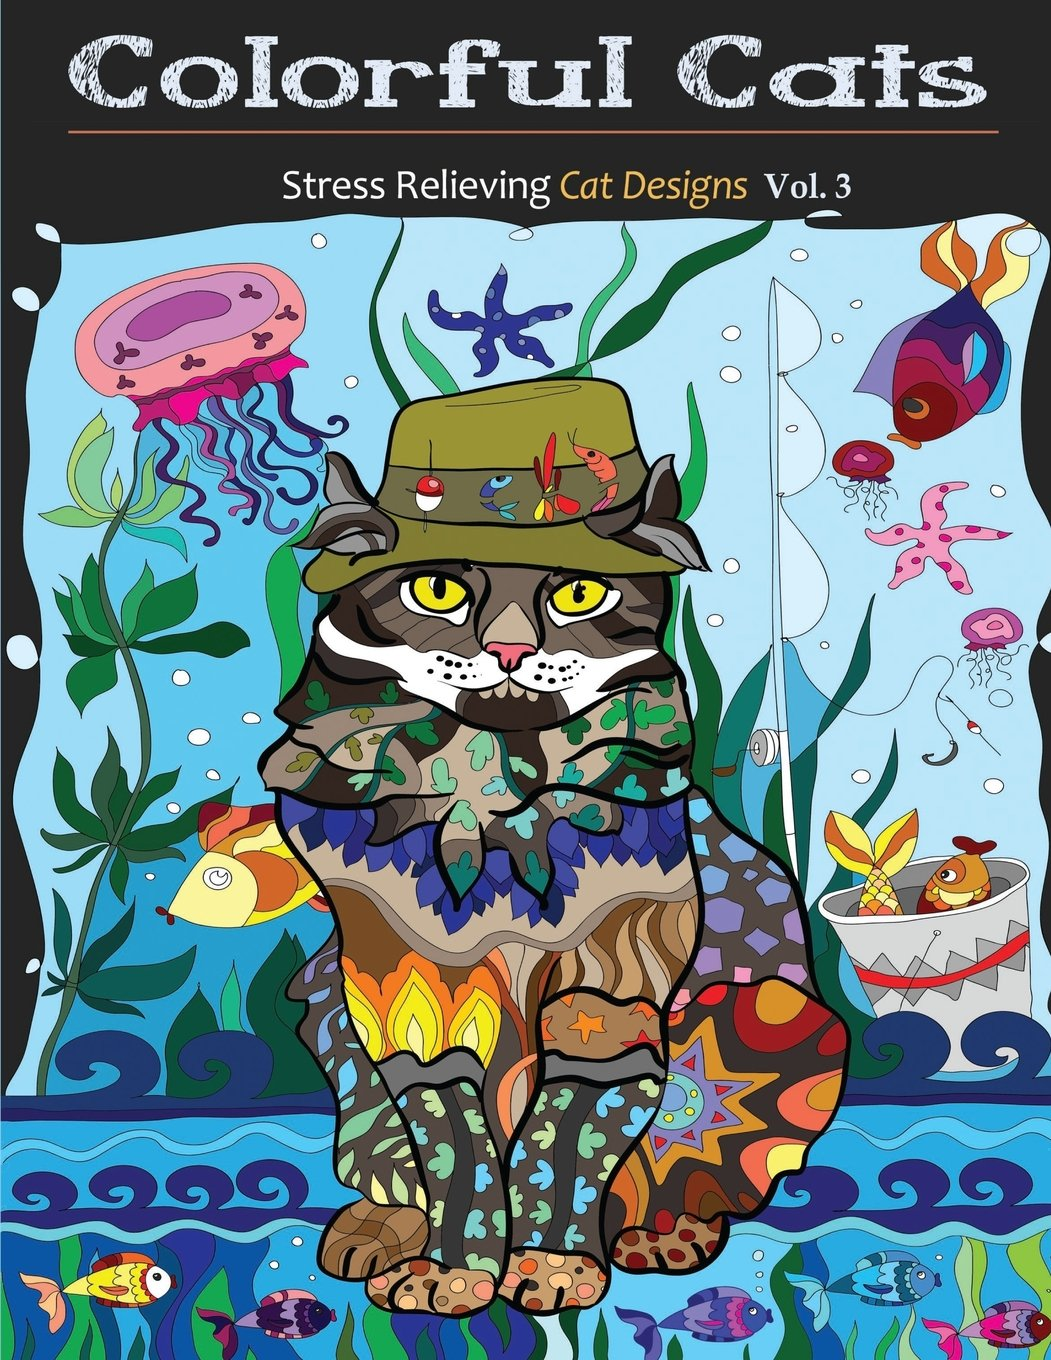 Stress relieving cats coloring - Amazon Com Colorful Cats Stress Relieving Cat Designs Creative Cats Adult Coloring Books Volume 3 9781517444877 Adult Coloring Books Coloring